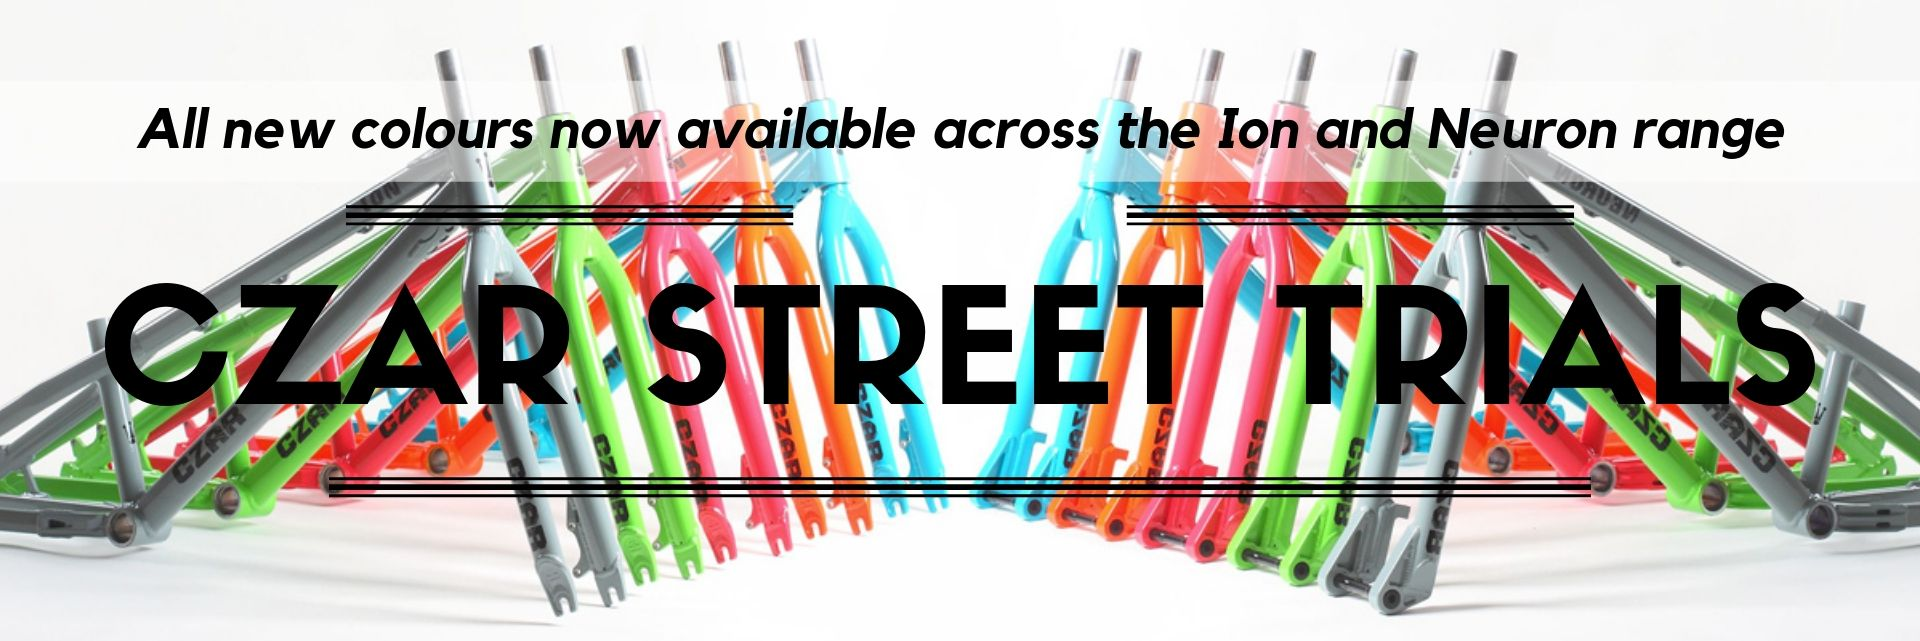 Czar Street Trials Bikes - new colours available